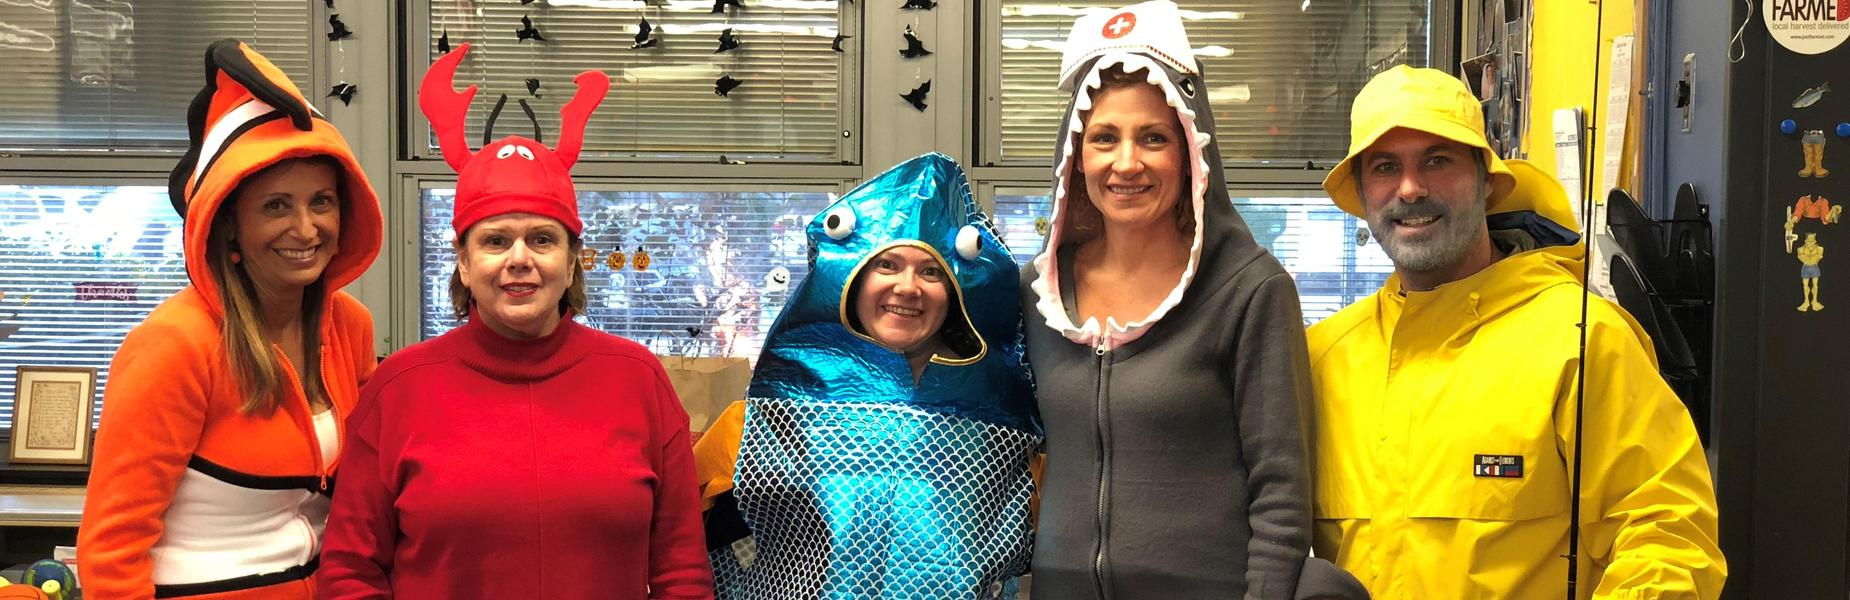 Tamaques principal David Duelks is a fisherman with his main office staff as various ocean critters for Halloween 2018.